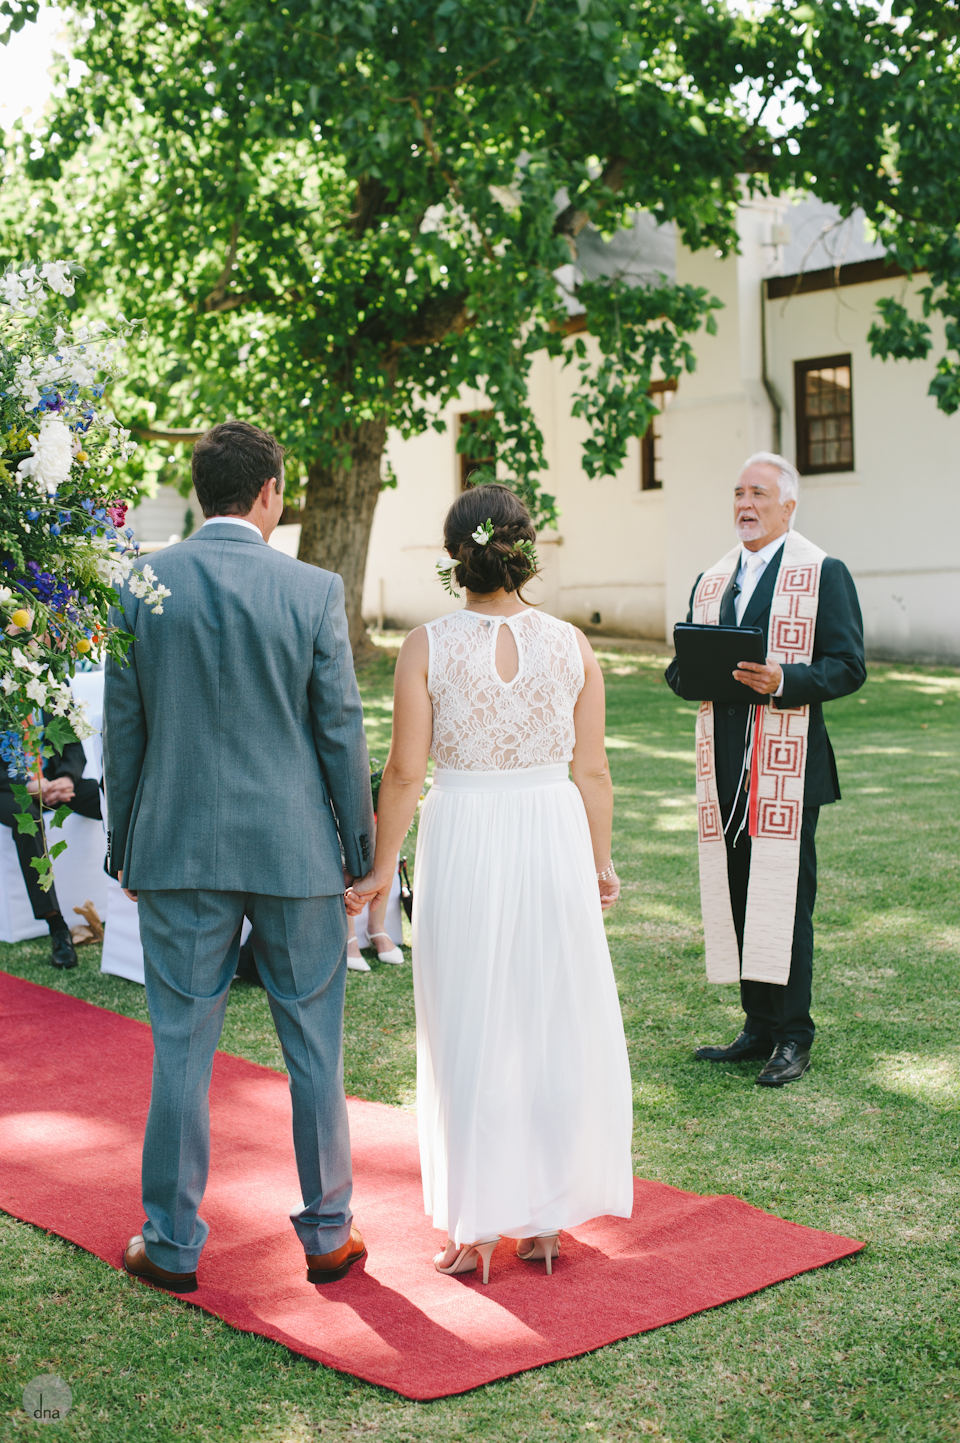 Caroline and Nicholas wedding Zorgvliet Stellenbosch South Africa shot by dna photographers 280.jpg